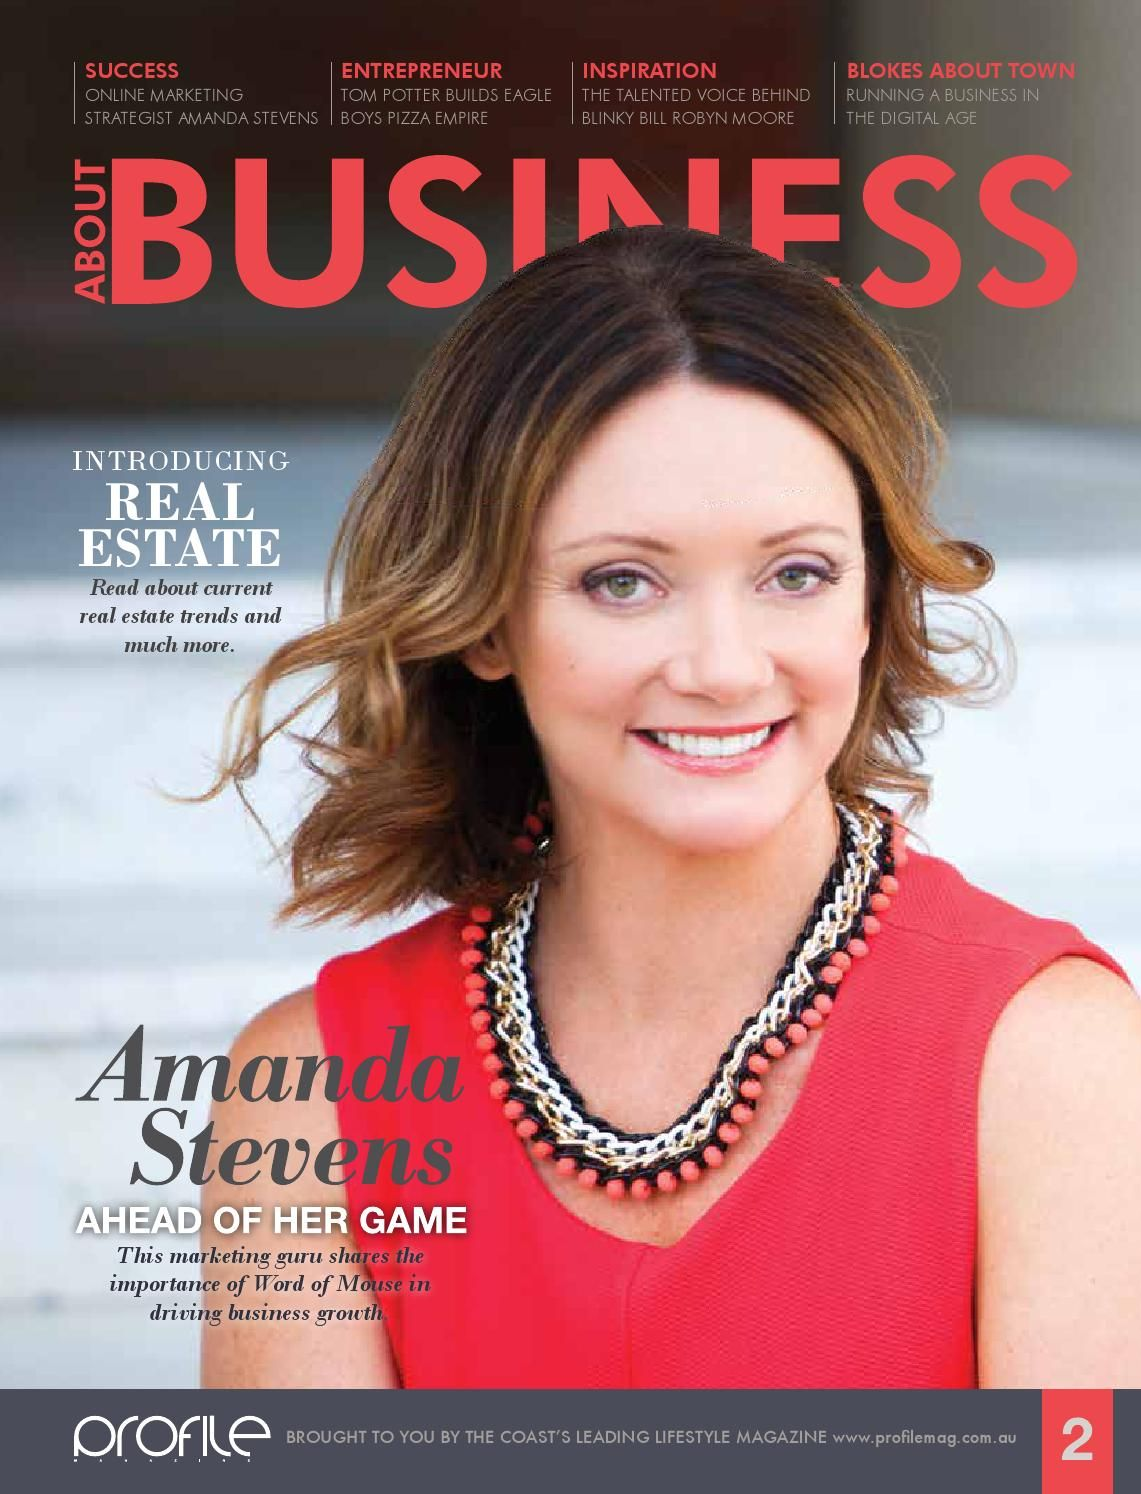 About Business April 2015  Sunshine Coast business publication brought to you by Profile Magazine, featuring inspirational success stories, innovative tips and the latest real estate news.